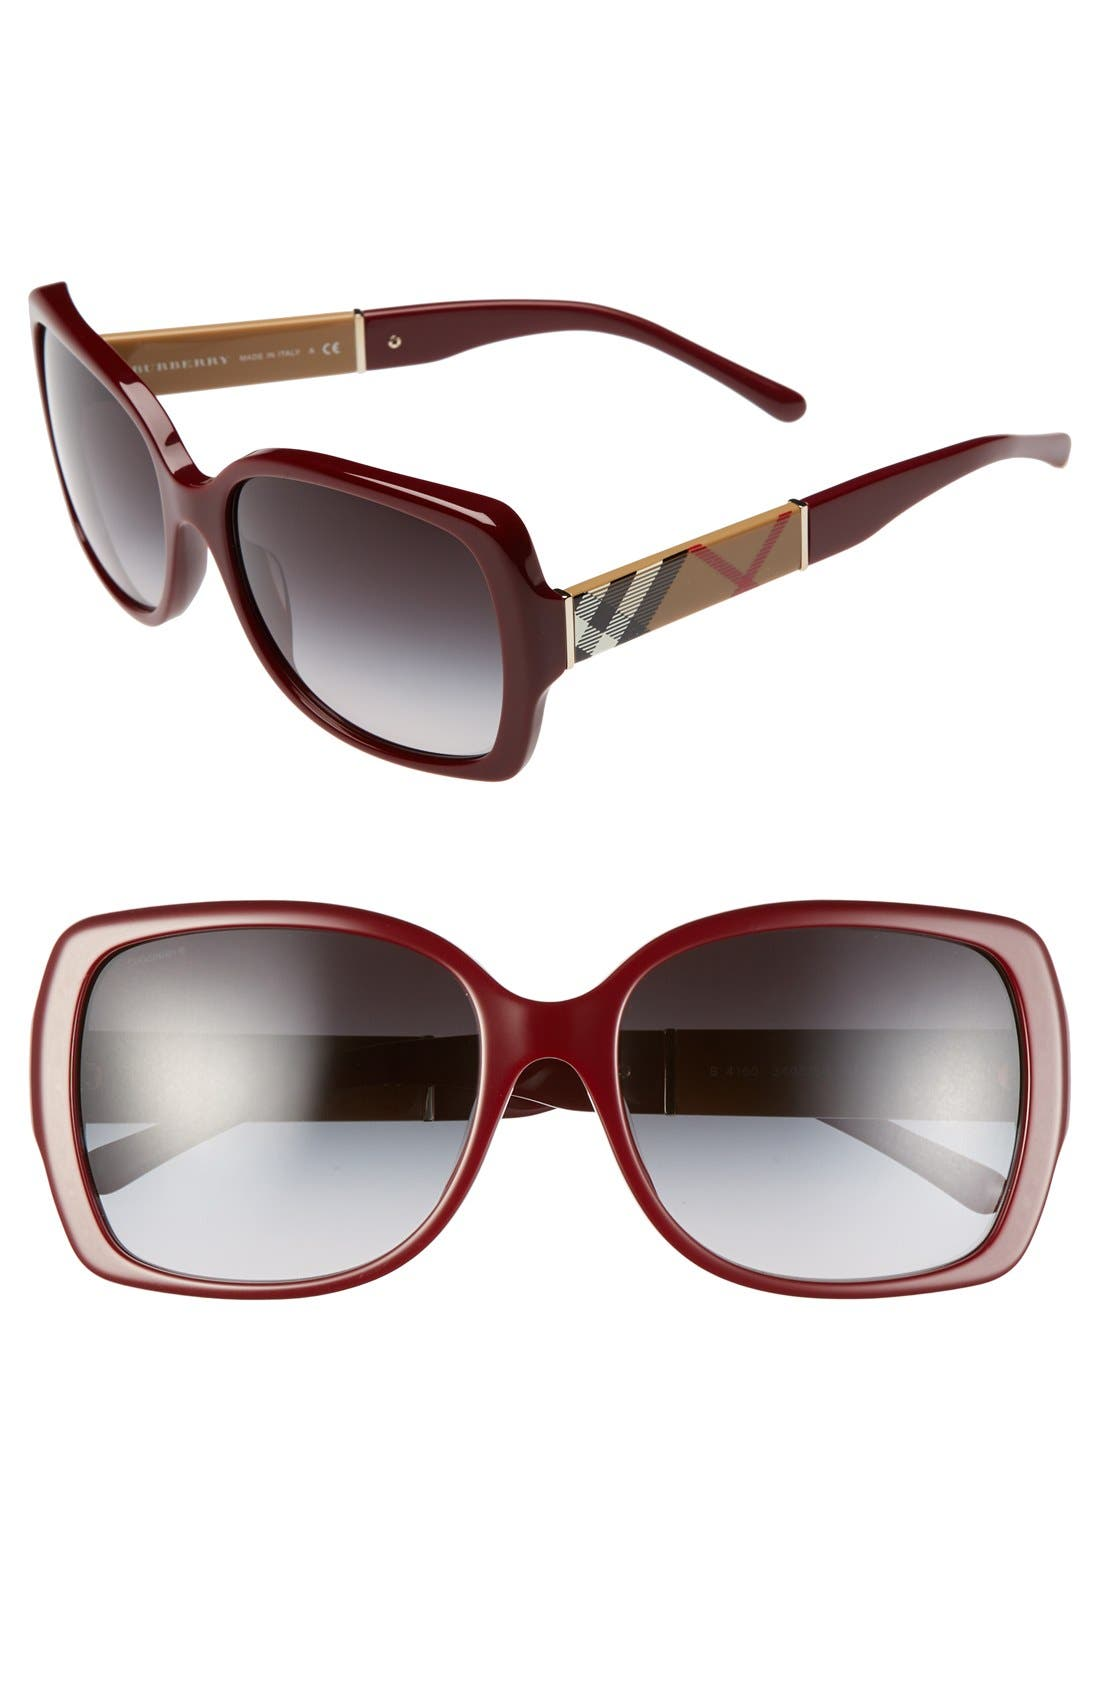 Main Image - Burberry 58mm Square Sunglasses